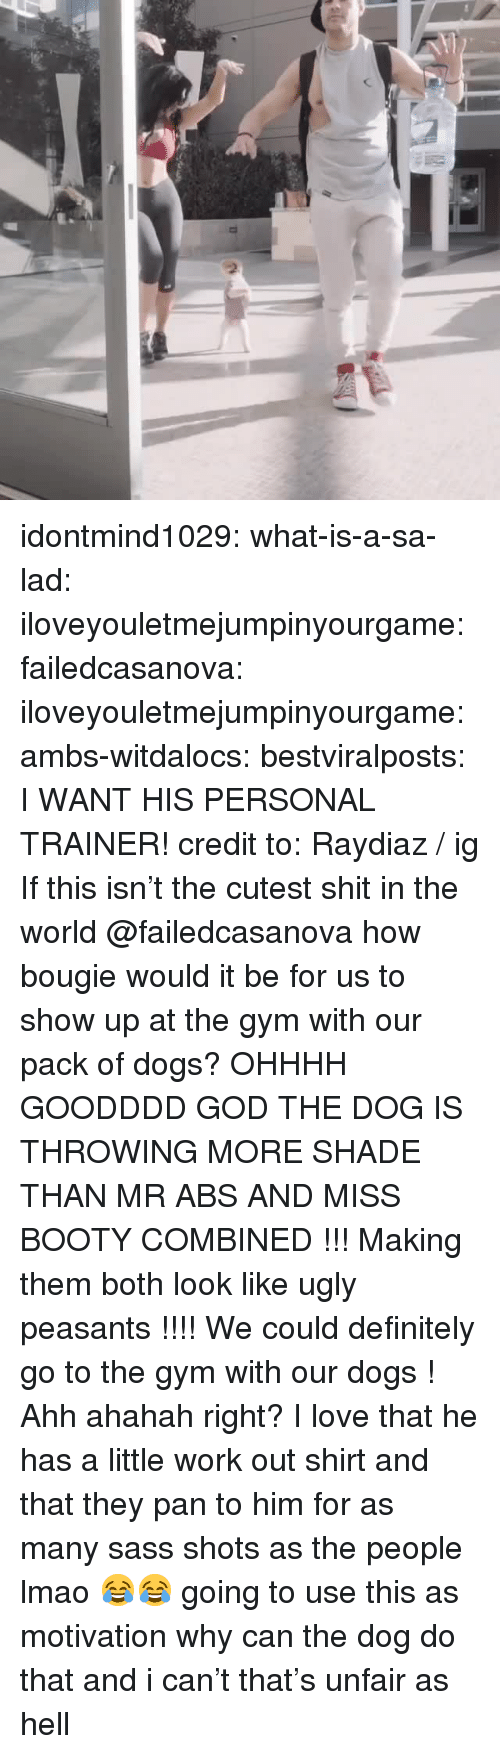 Ohhhh: idontmind1029: what-is-a-sa-lad:  iloveyouletmejumpinyourgame:  failedcasanova:  iloveyouletmejumpinyourgame:   ambs-witdalocs:   bestviralposts:  I WANT HIS PERSONAL TRAINER! credit to: Raydiaz / ig   If this isn't the cutest shit in the world    @failedcasanova how bougie would it be for us to show up at the gym with our pack of dogs?    OHHHH GOODDDD GOD THE DOG IS THROWING MORE SHADE THAN MR ABS AND MISS BOOTY COMBINED !!! Making them both look like ugly peasants !!!! We could definitely go to the gym with our dogs !   Ahh ahahah right? I love that he has a little work out shirt and that they pan to him for as many sass shots as the people lmao 😂😂  going to use this as motivation   why can the dog do that and i can't that's unfair as hell